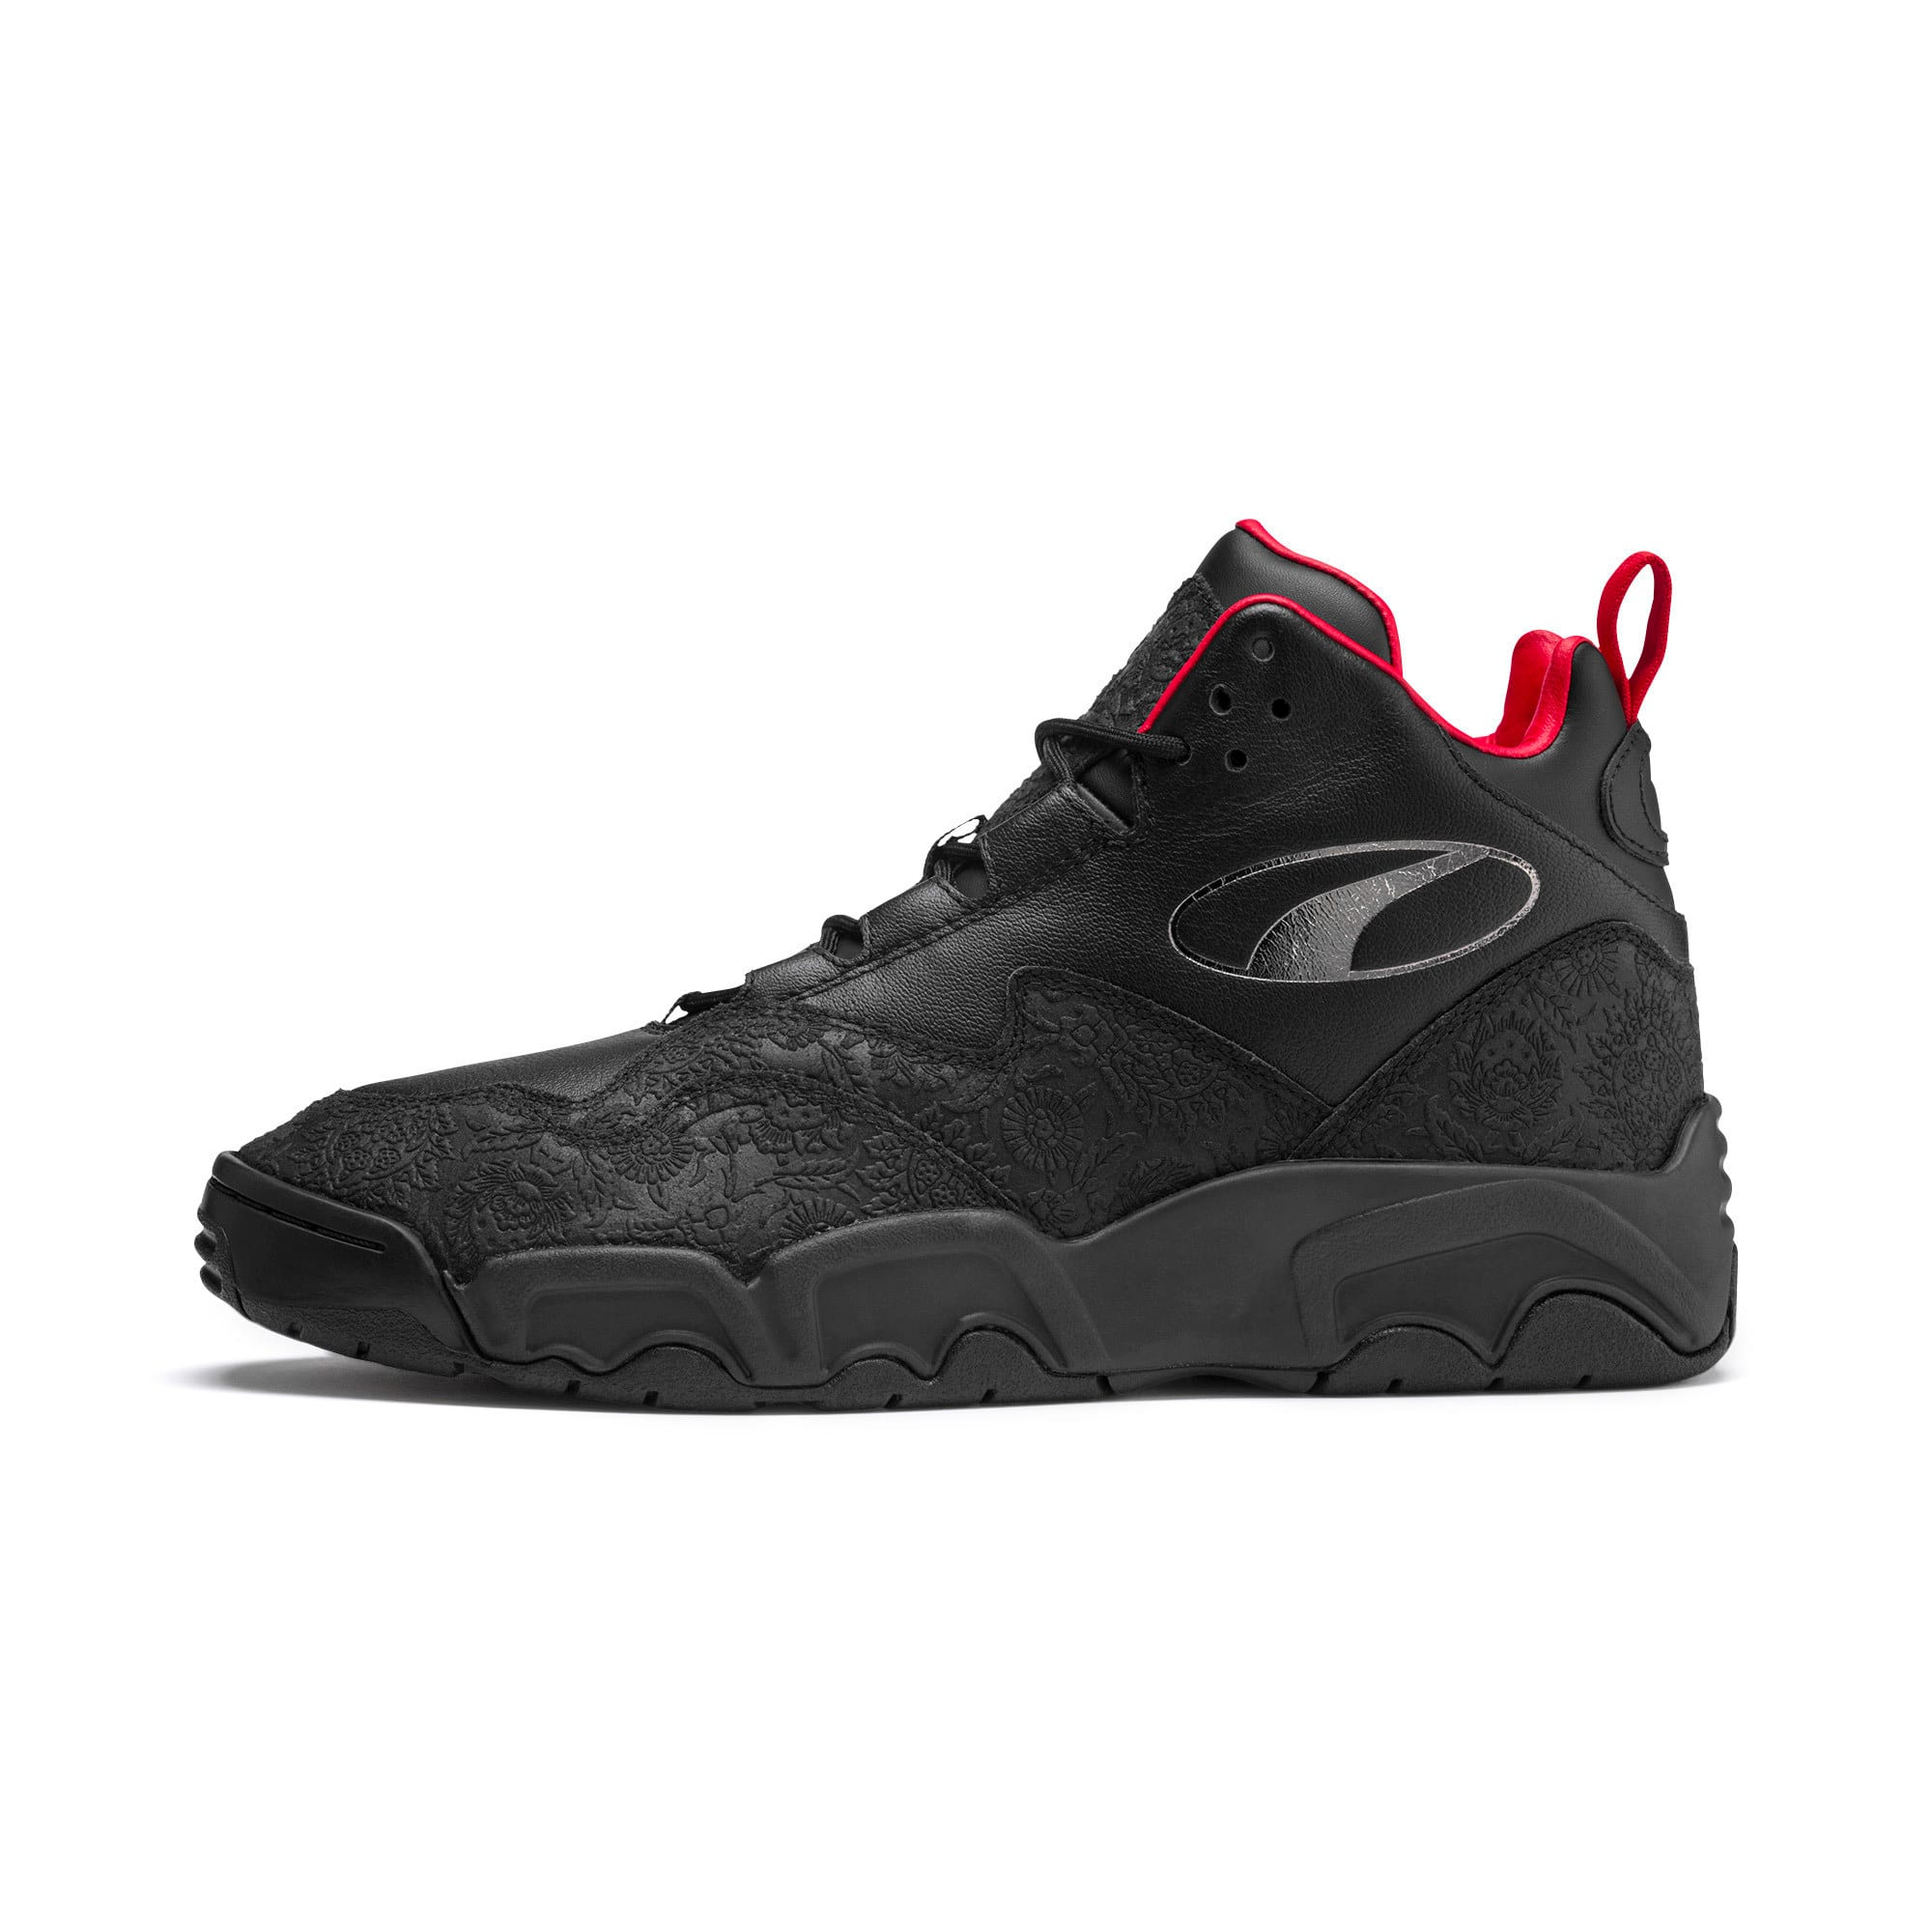 Thumbnail 1 of Source Mid World Cup Sneakers, P Blk-Bronze-High Risk Red, medium